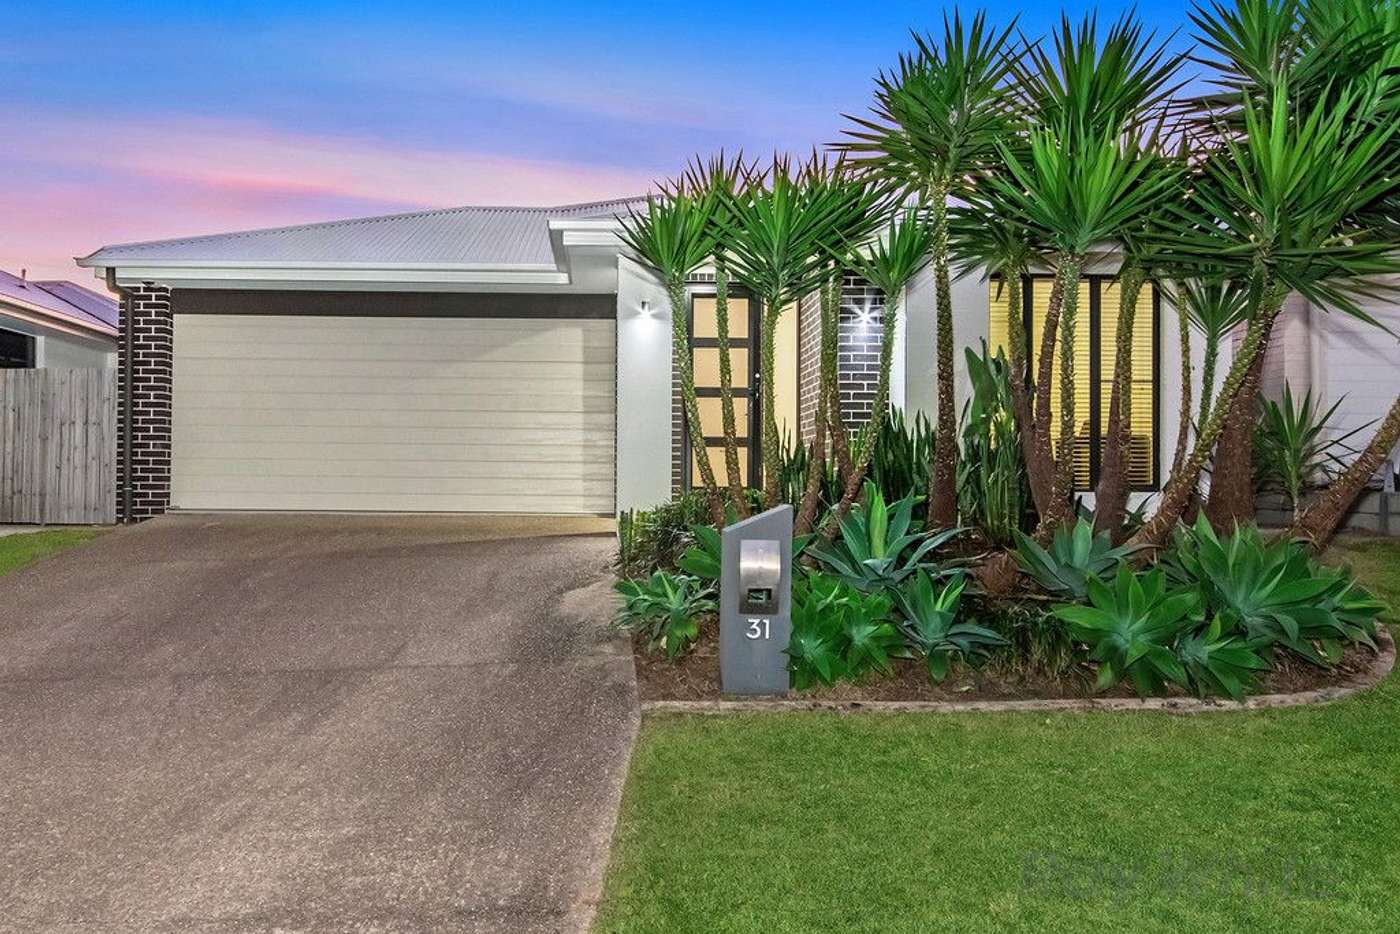 Main view of Homely house listing, 31 Ludlow Crescent, Ormeau Hills QLD 4208